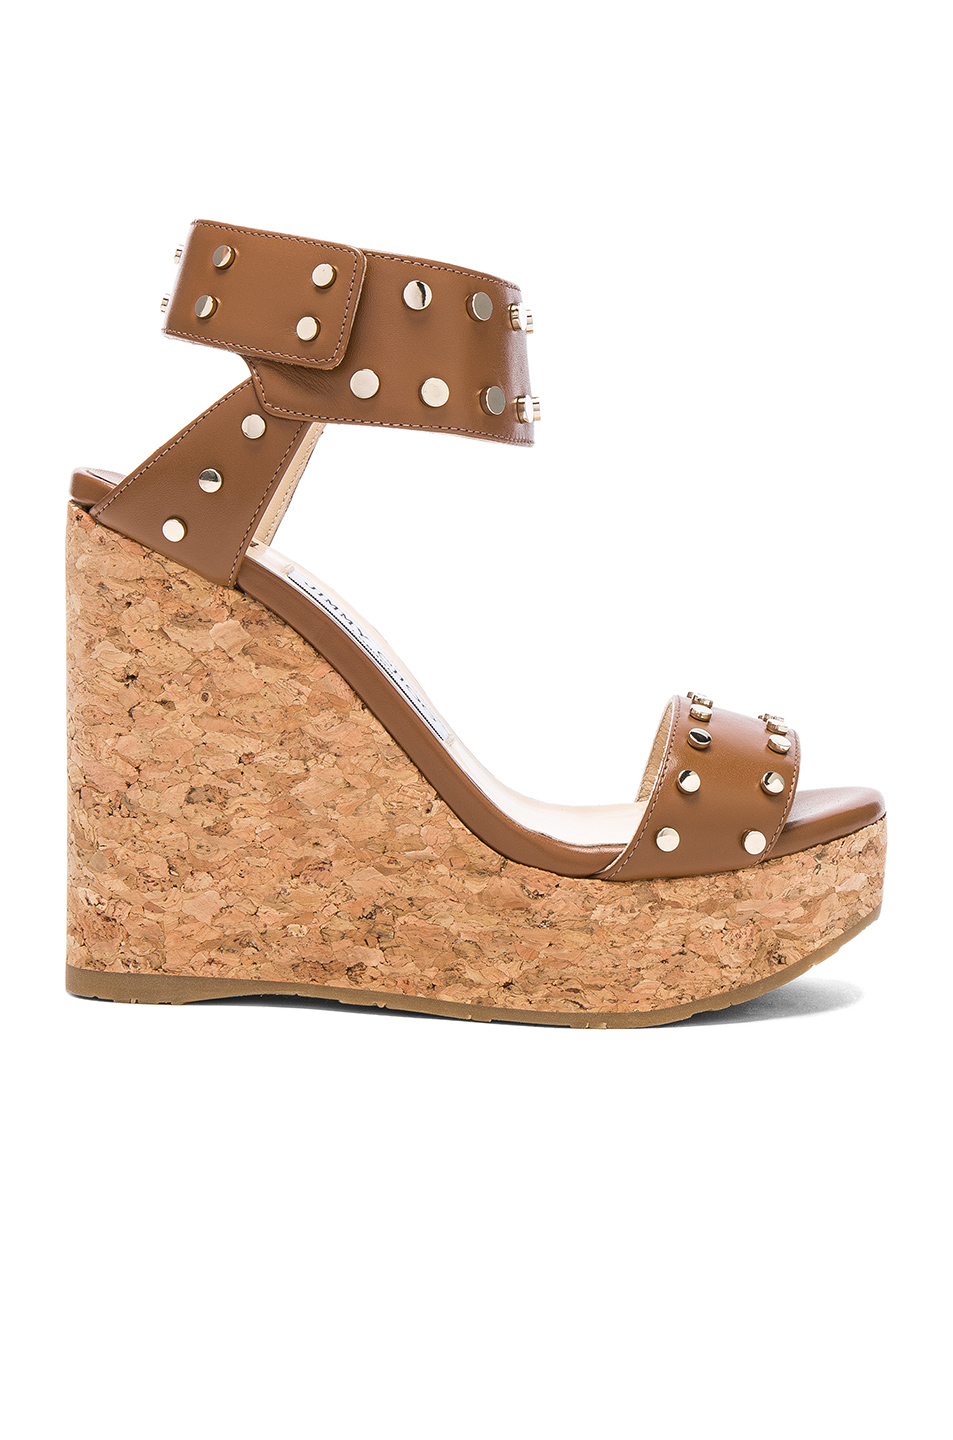 Jimmy Choo Shiny Leather Nelly Wedges With Studs In Neutrals